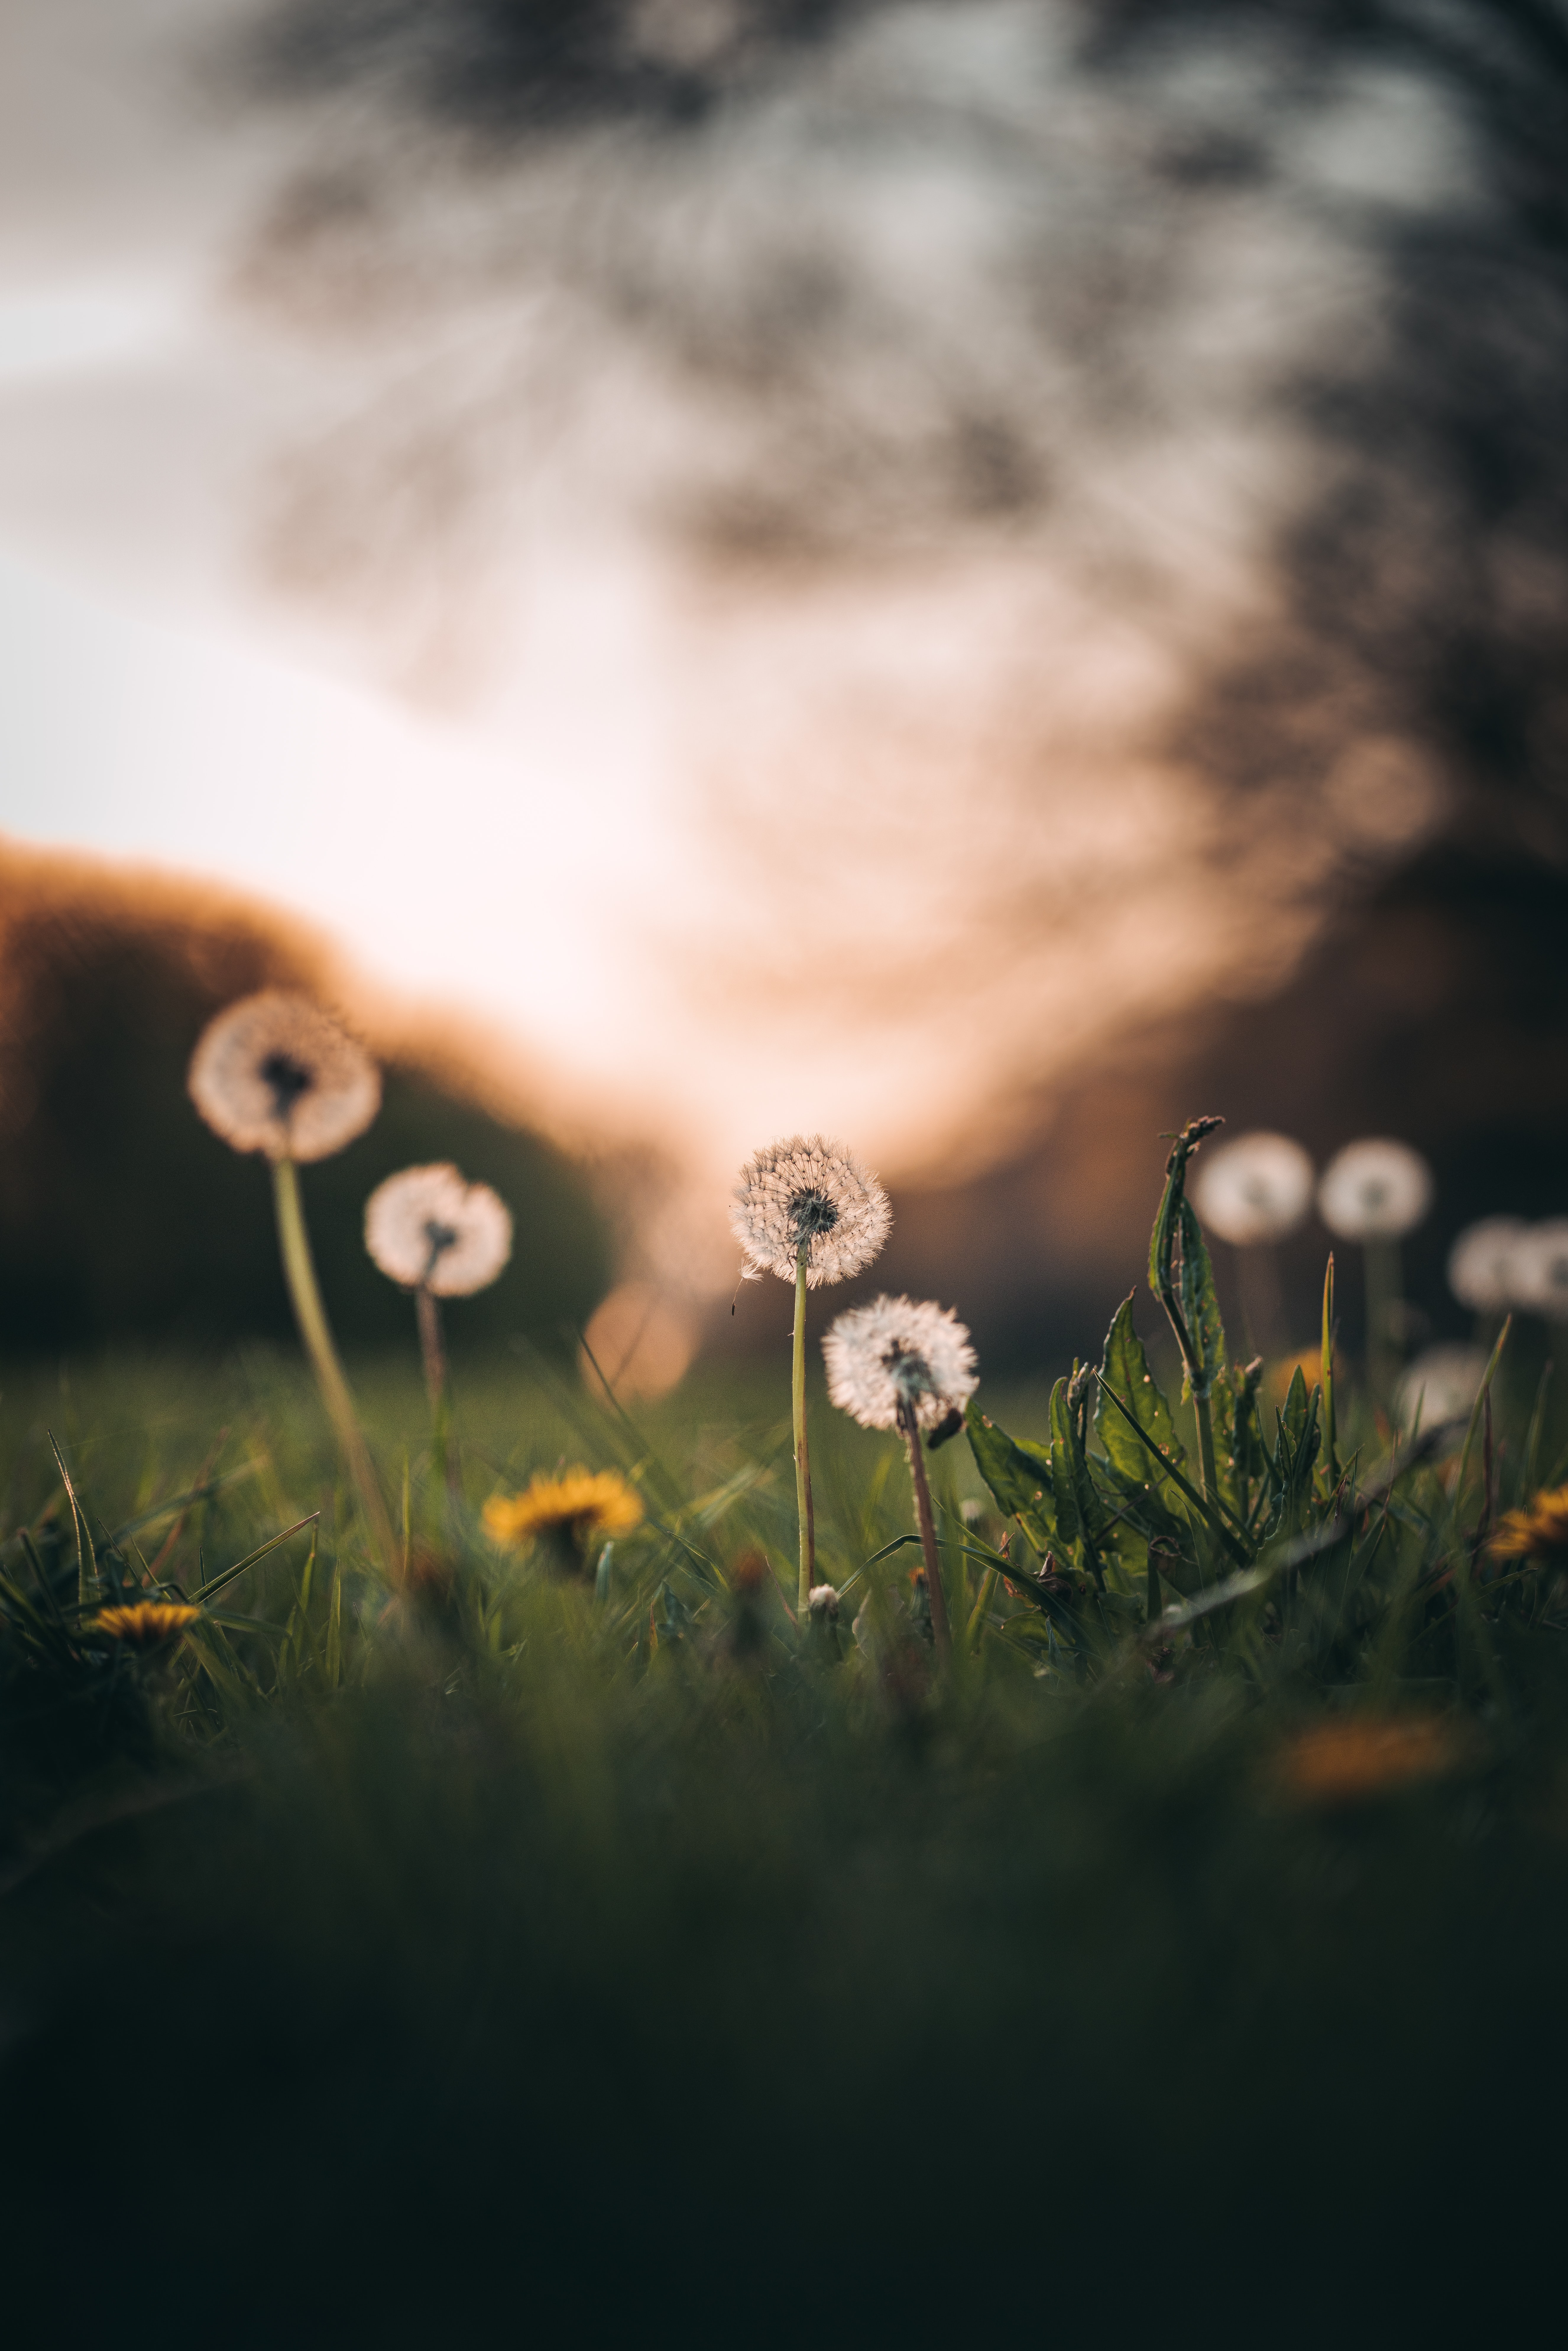 52414 download wallpaper Flowers, Grass, Dandelions, Macro screensavers and pictures for free